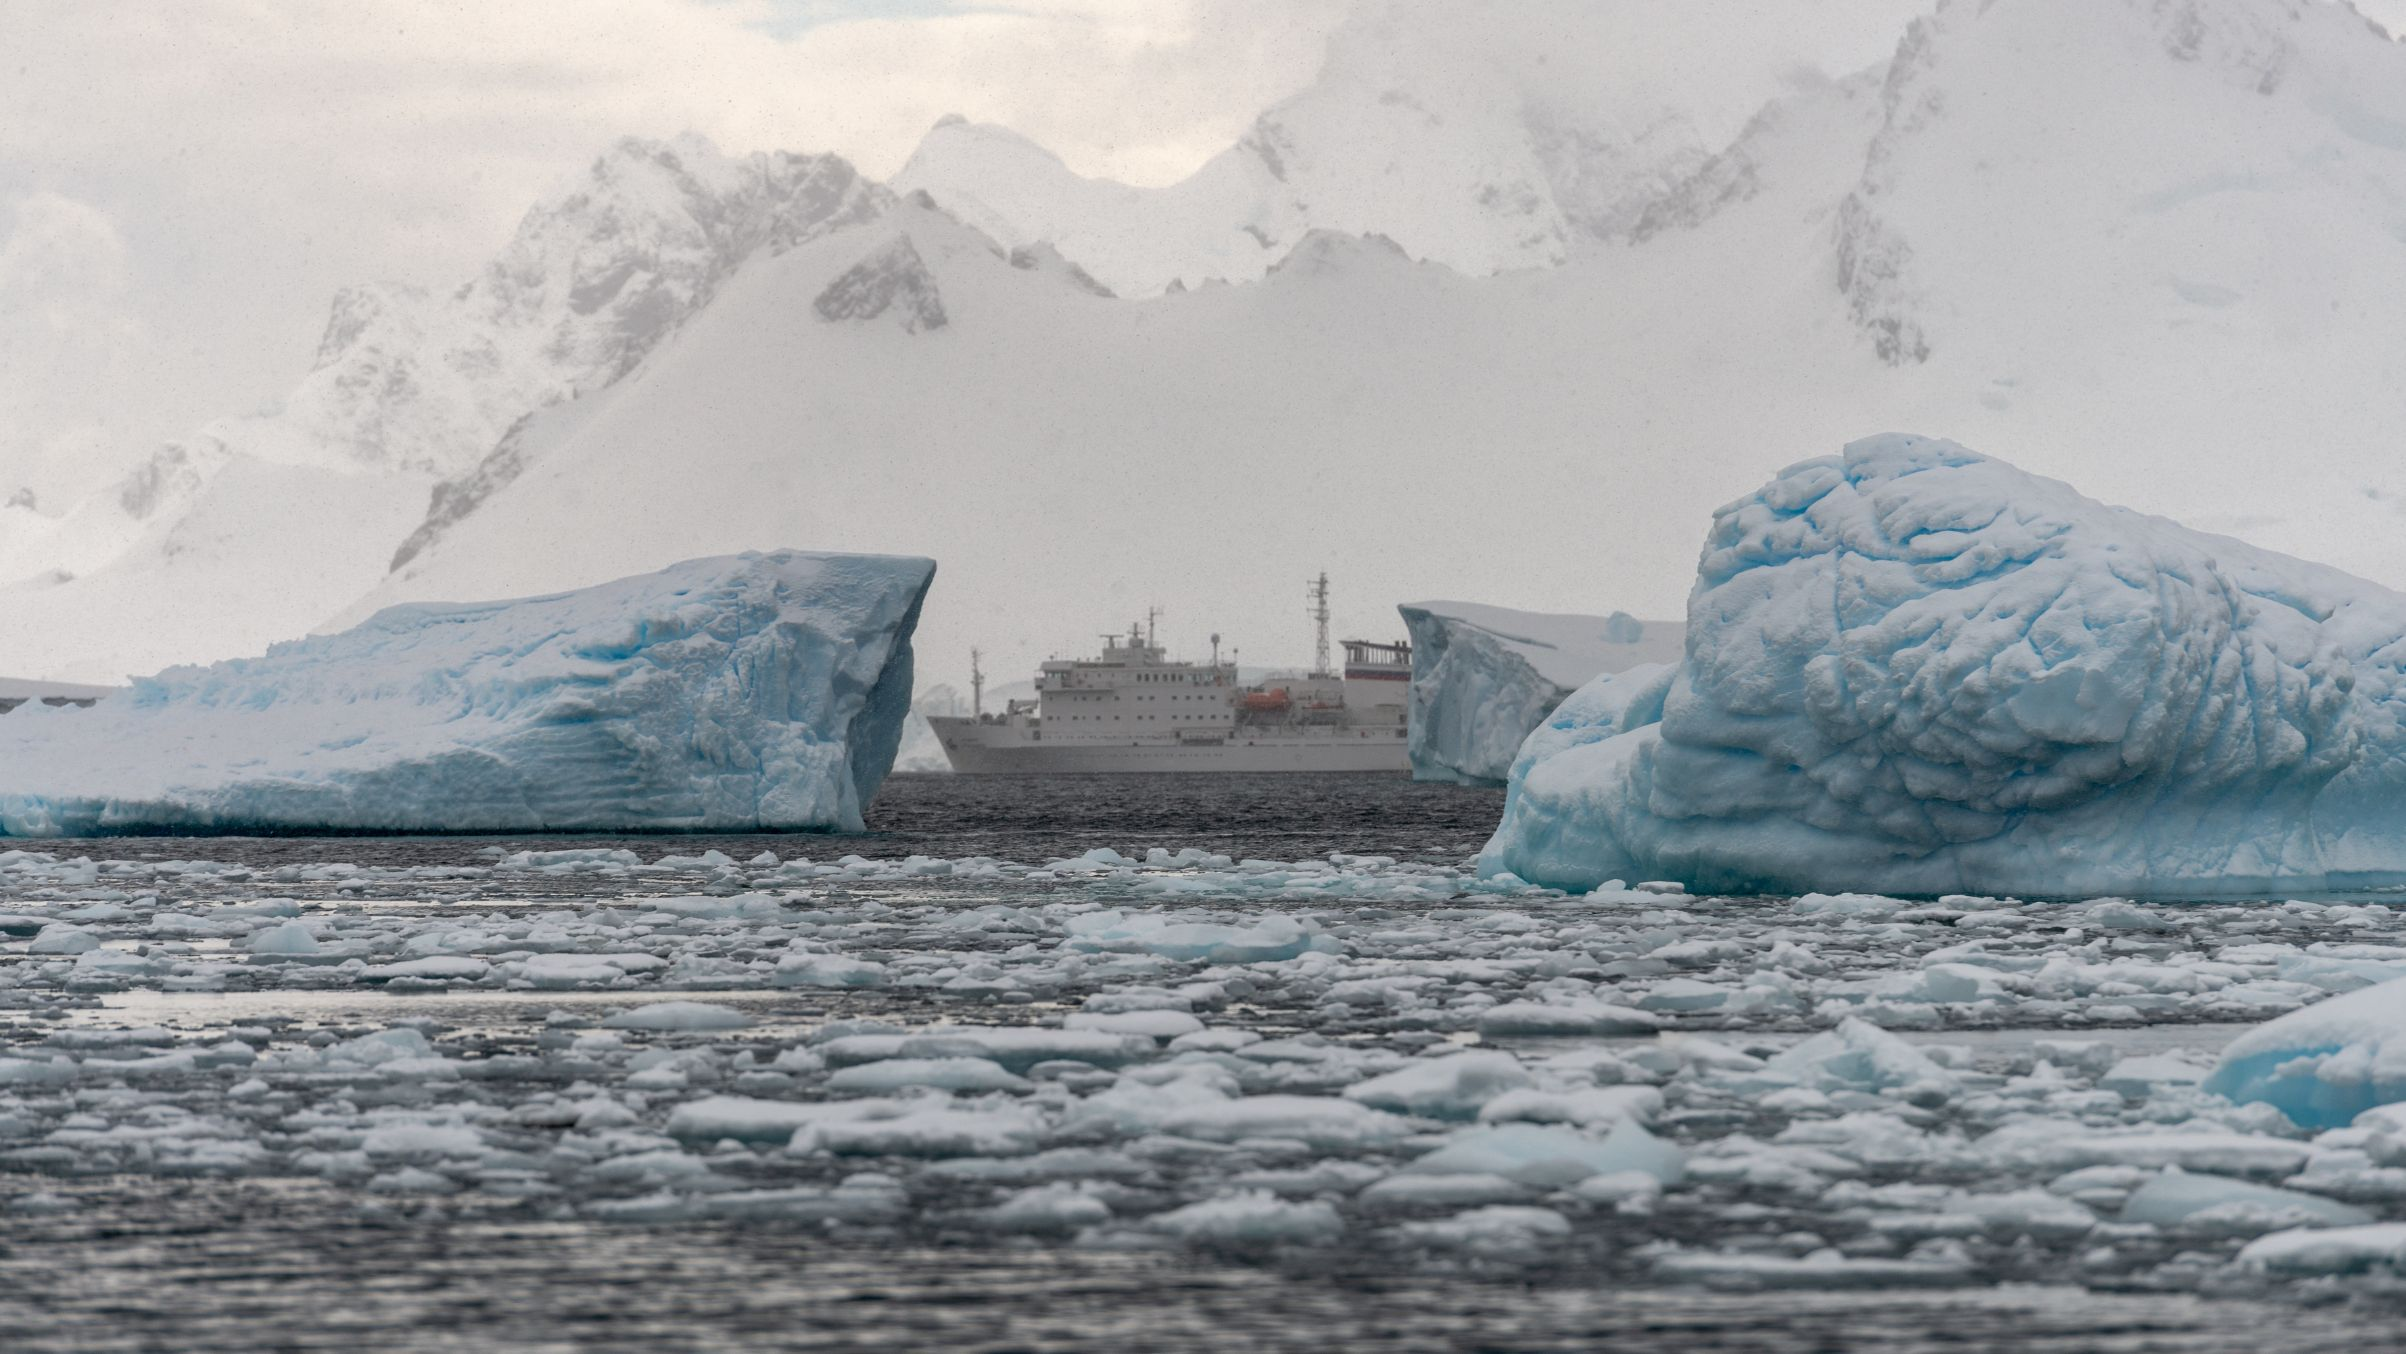 cruise ship in the waters off Antarctica